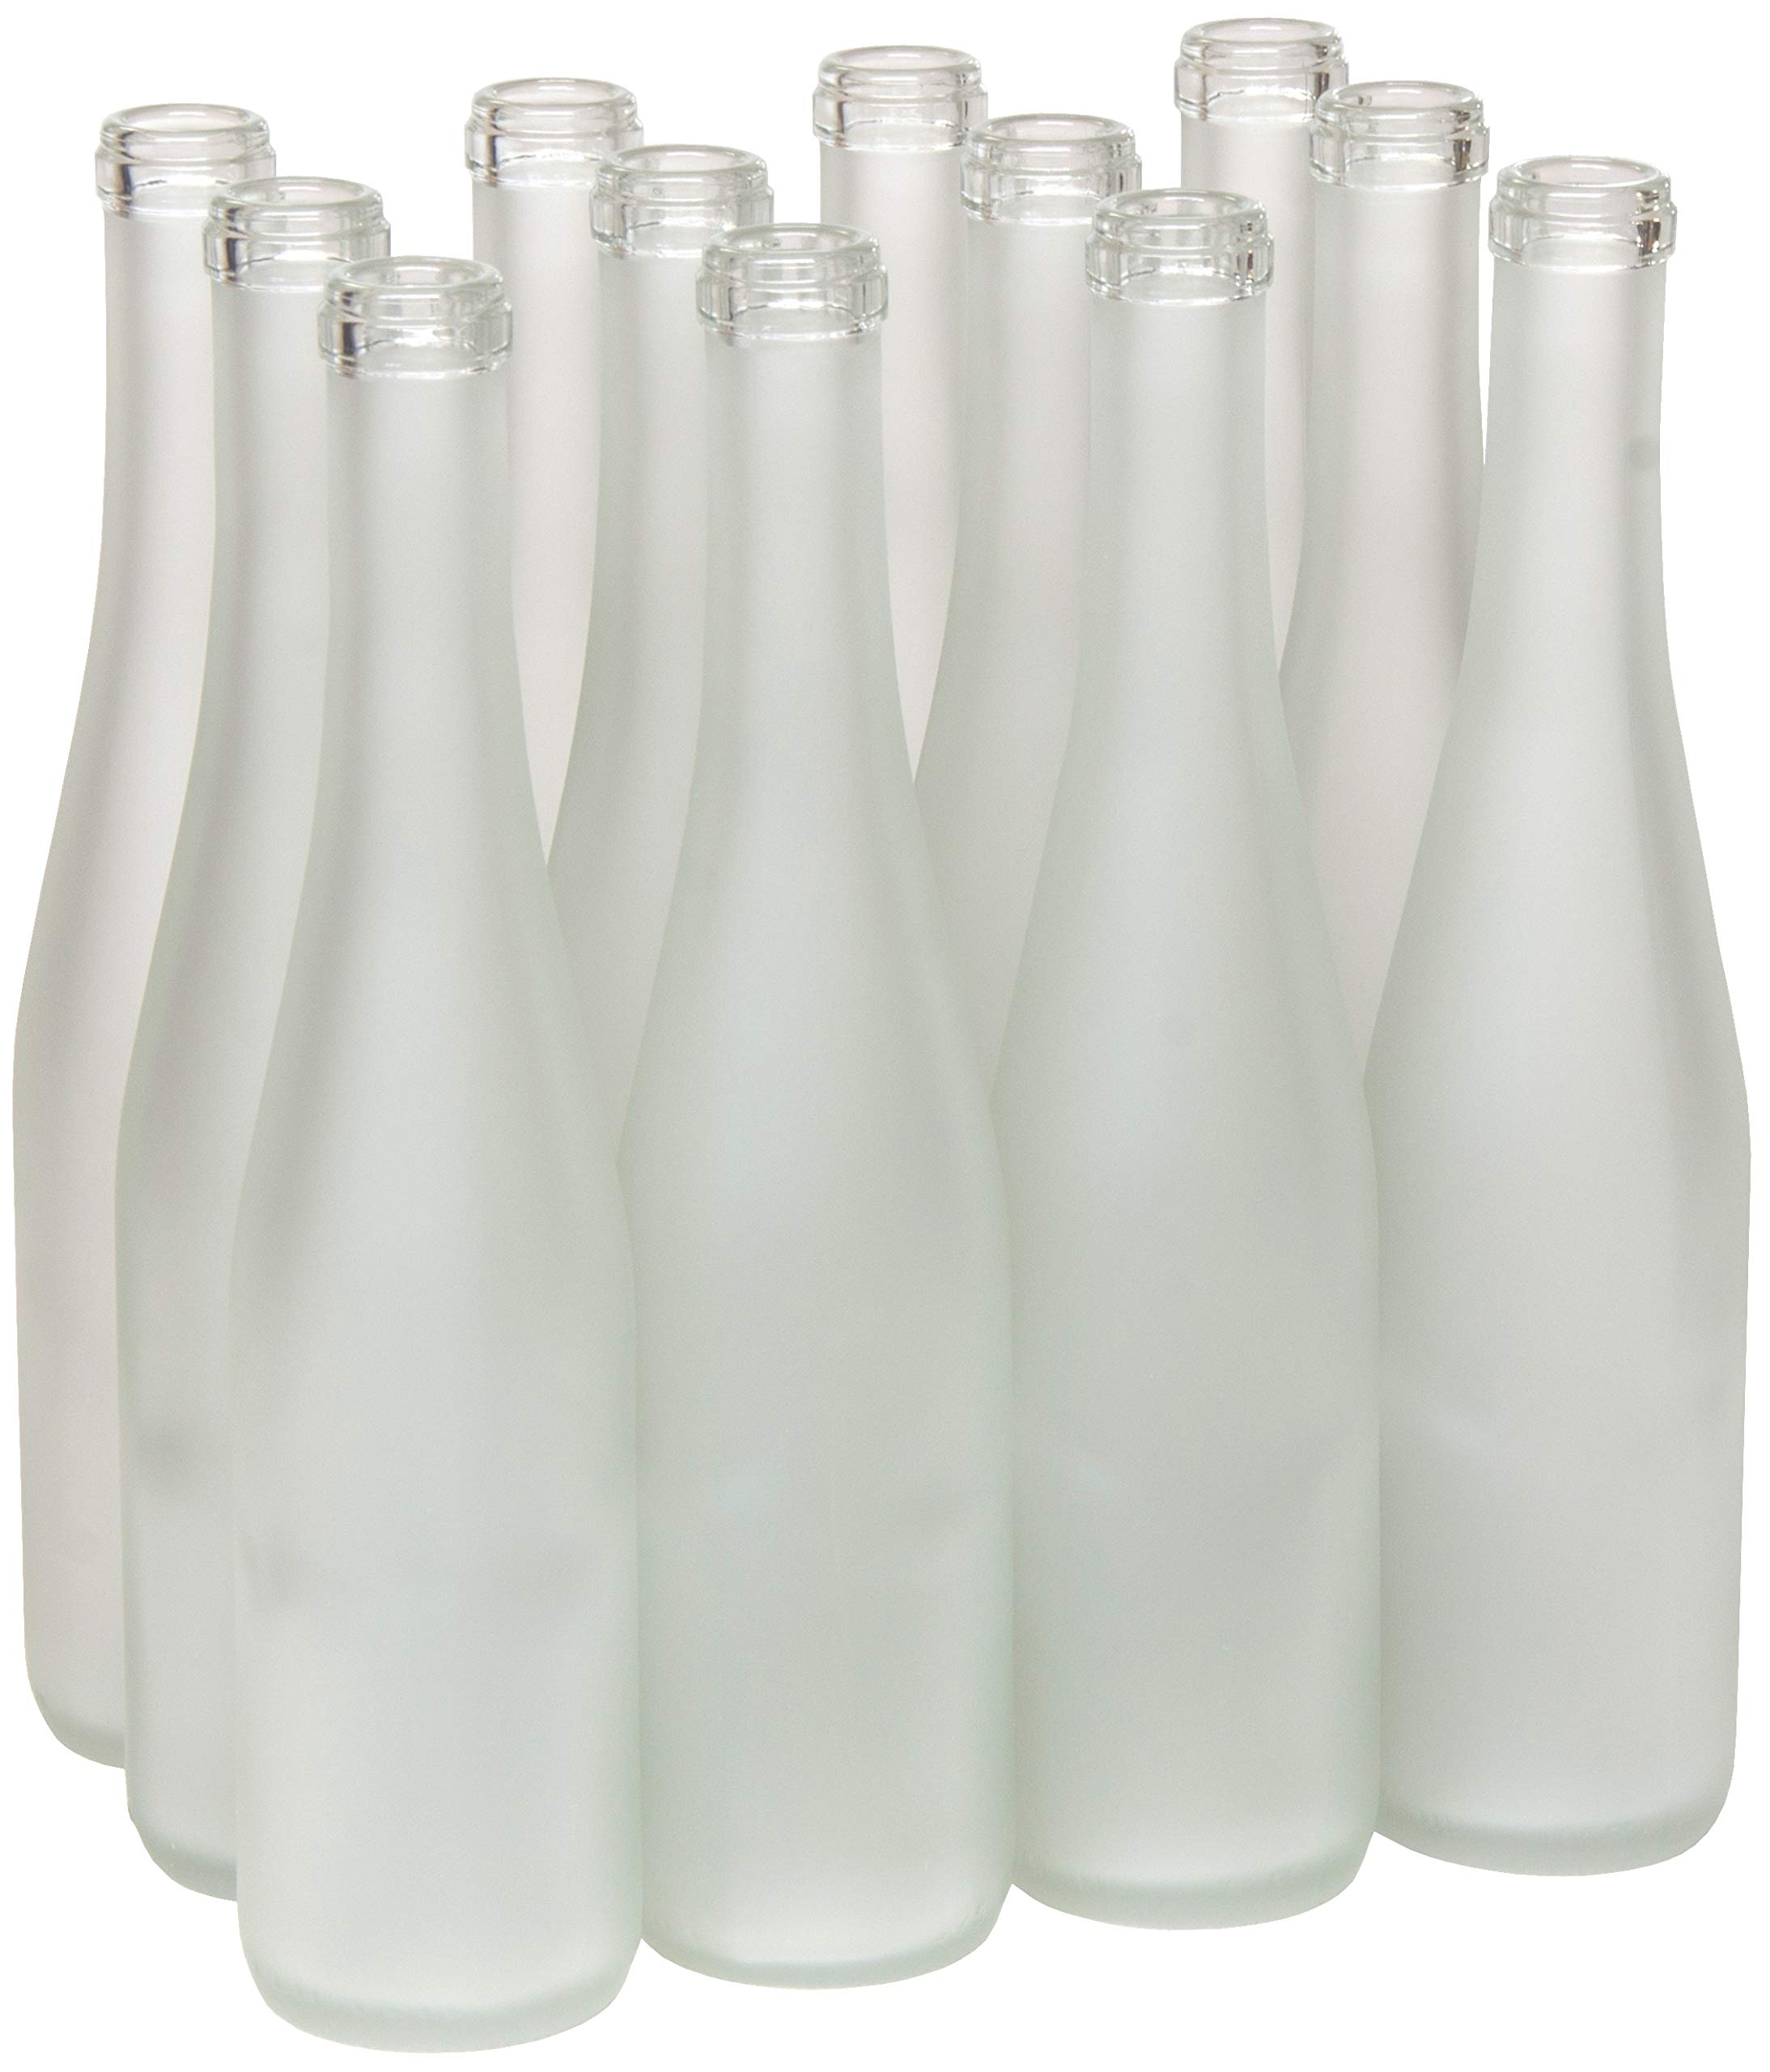 North Mountain Supply 375ml Frosted Glass Stretch Hock Wine Bottle Flat-Bottomed Cork Finish - Case of 12 by North Mountain Supply (Image #1)